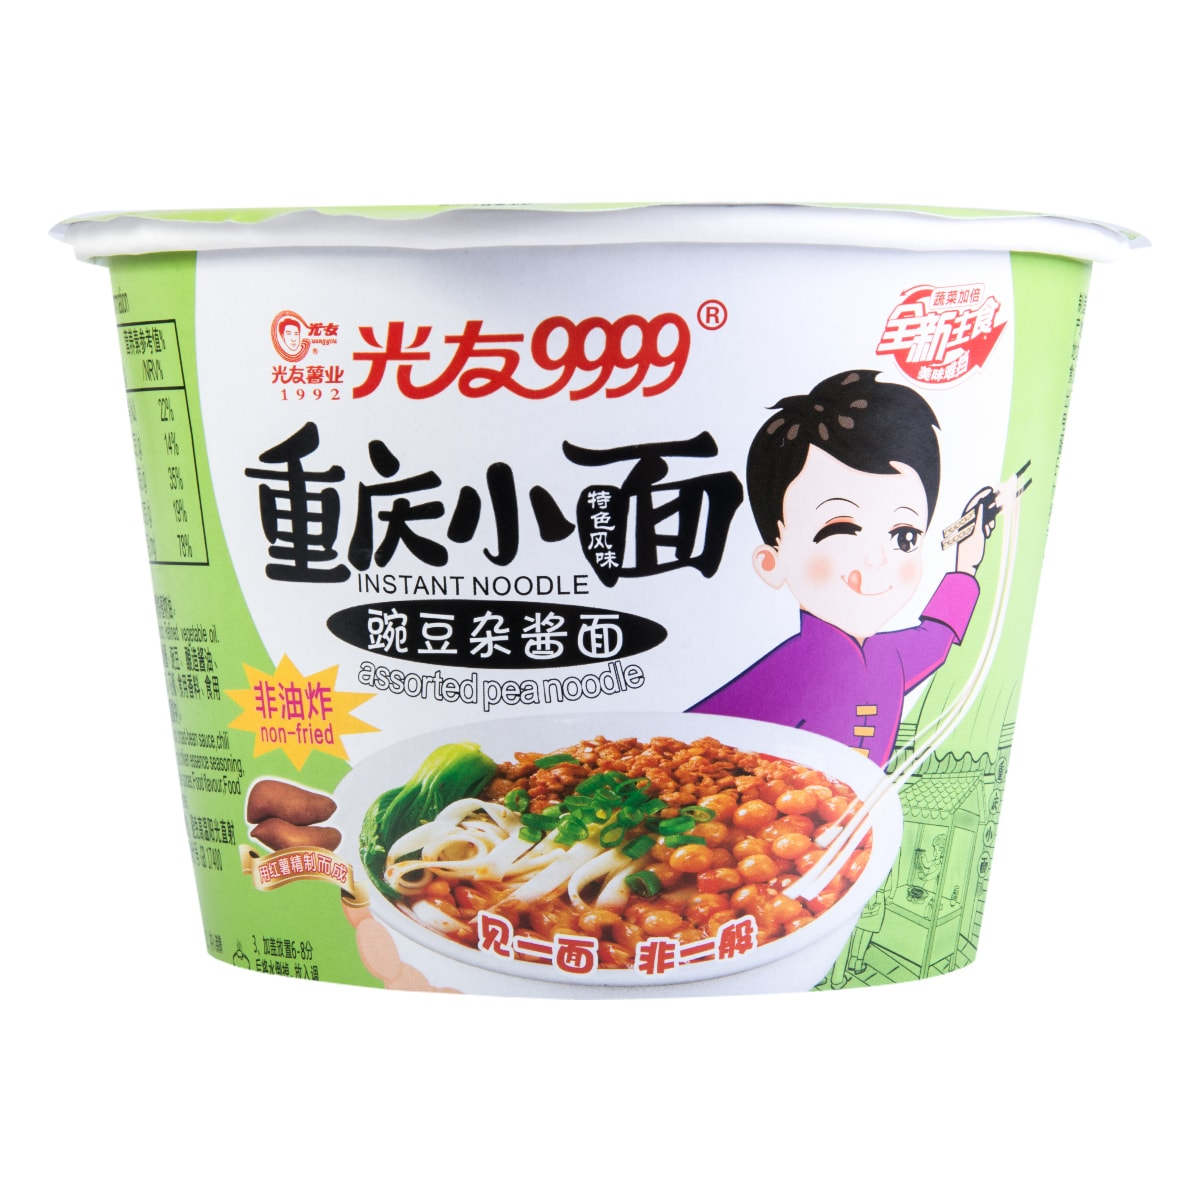 GUANGYOU Spicy Hot Noodles Assorted Pea Flavor 110g